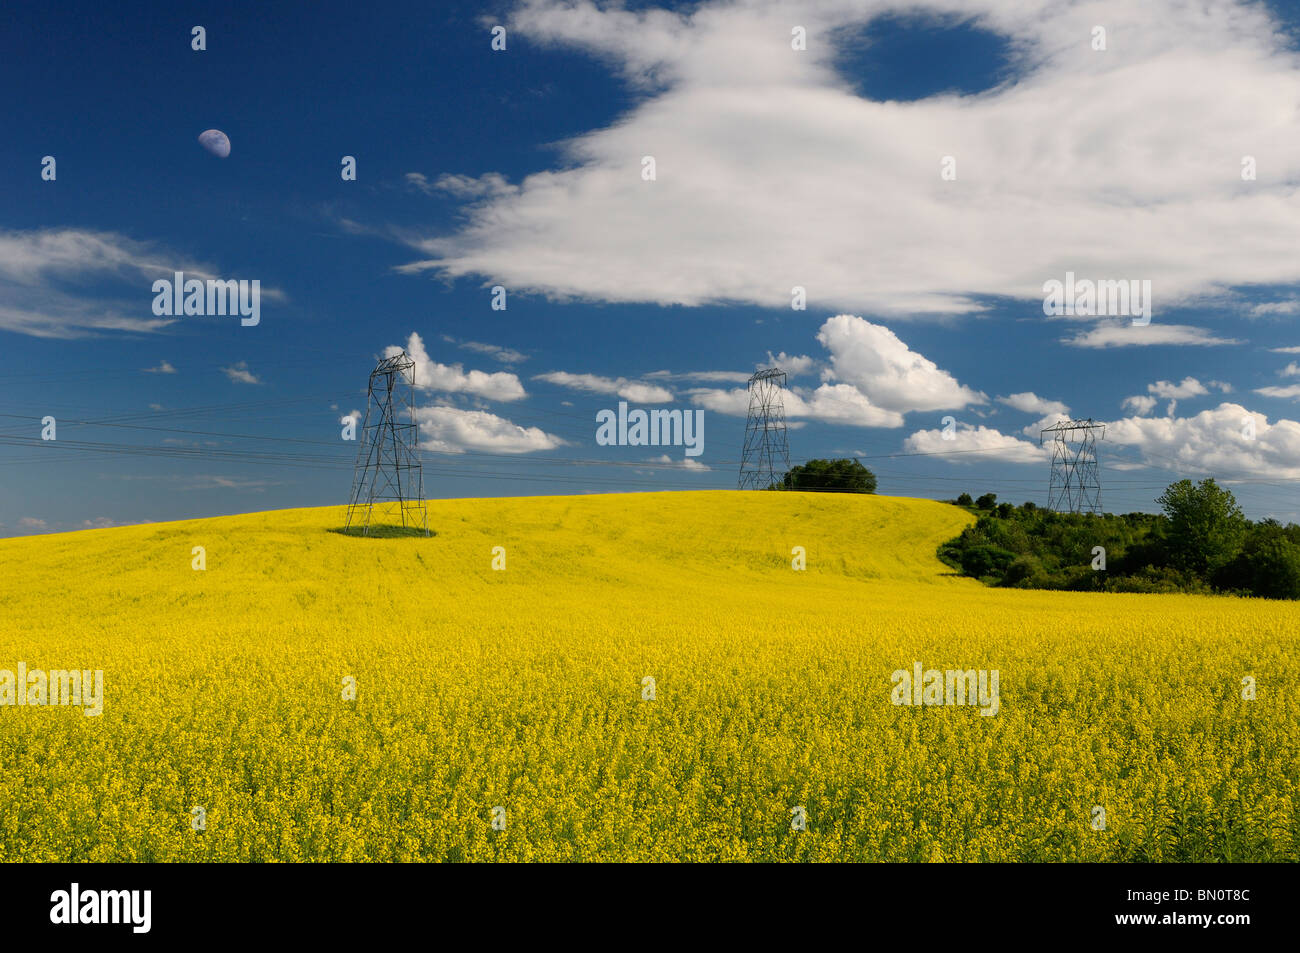 Field of yellow rapeseed crop with moon and hydro towers against a blue sky Oak Ridges Moraine Ontario Stock Photo